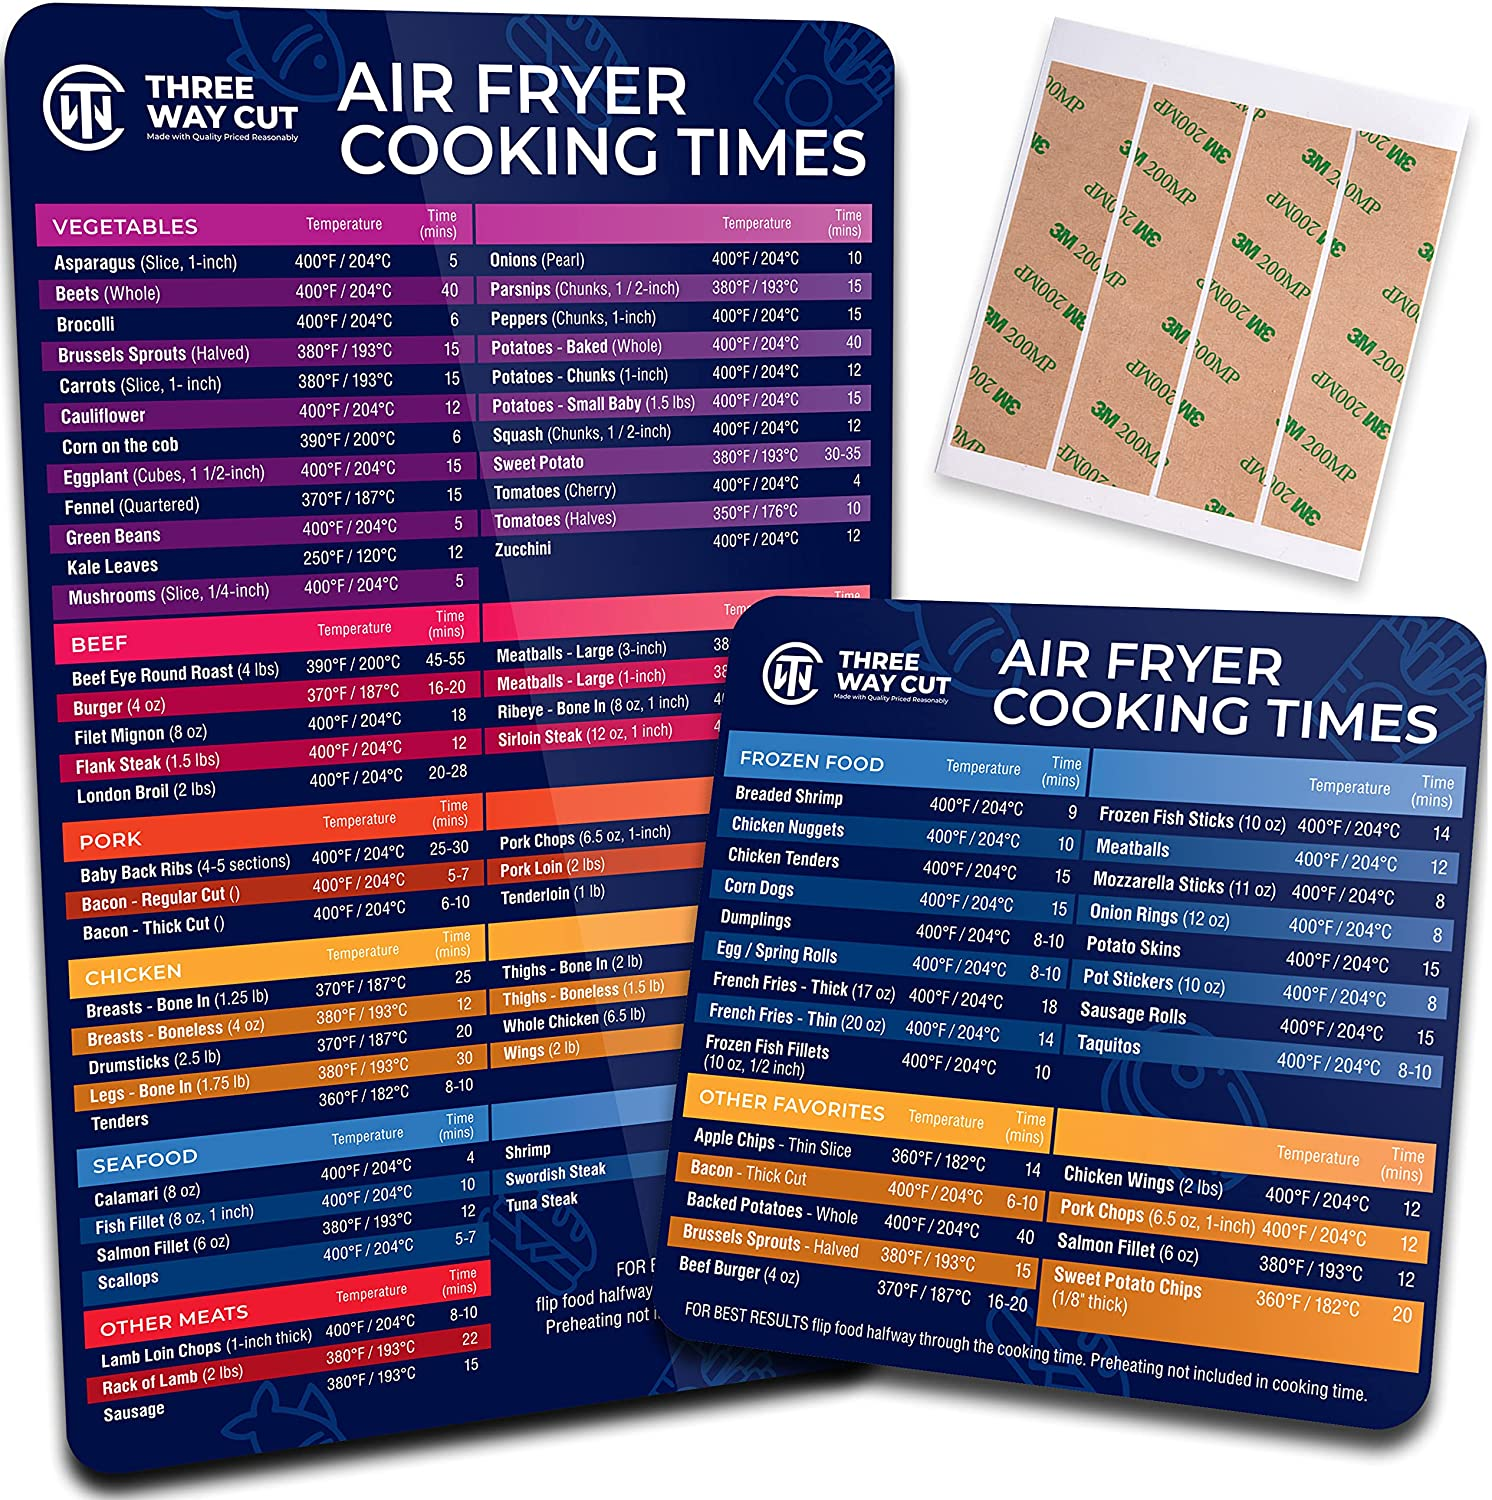 Air Fryer Magnetic Cheat Sheet Air - Air Fryer Accessories Cooking Times Chart 10.5x6.5 & 5X5 Magnet for Easy Accurate Frying, Quick Cook Guide Recipe Reference Over 90 Healthy Meals